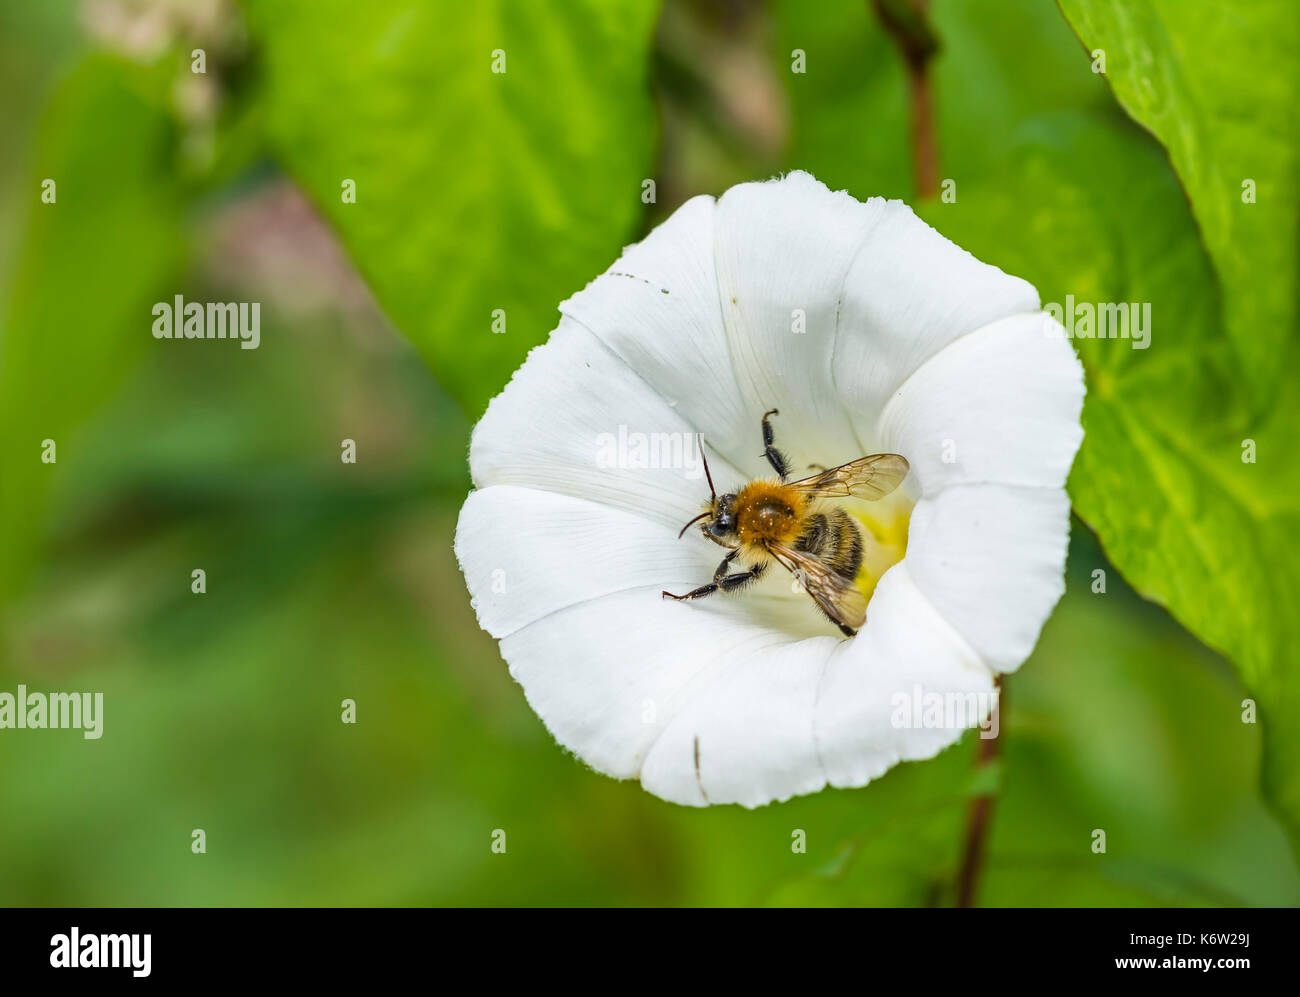 Hedge Bindweed (Calystegia sepium, Rutland beauty, Bugle vine, Heavenly trumpets, bellbind) pollinated by a Honey Bee in Autumn, UK. - Stock Image